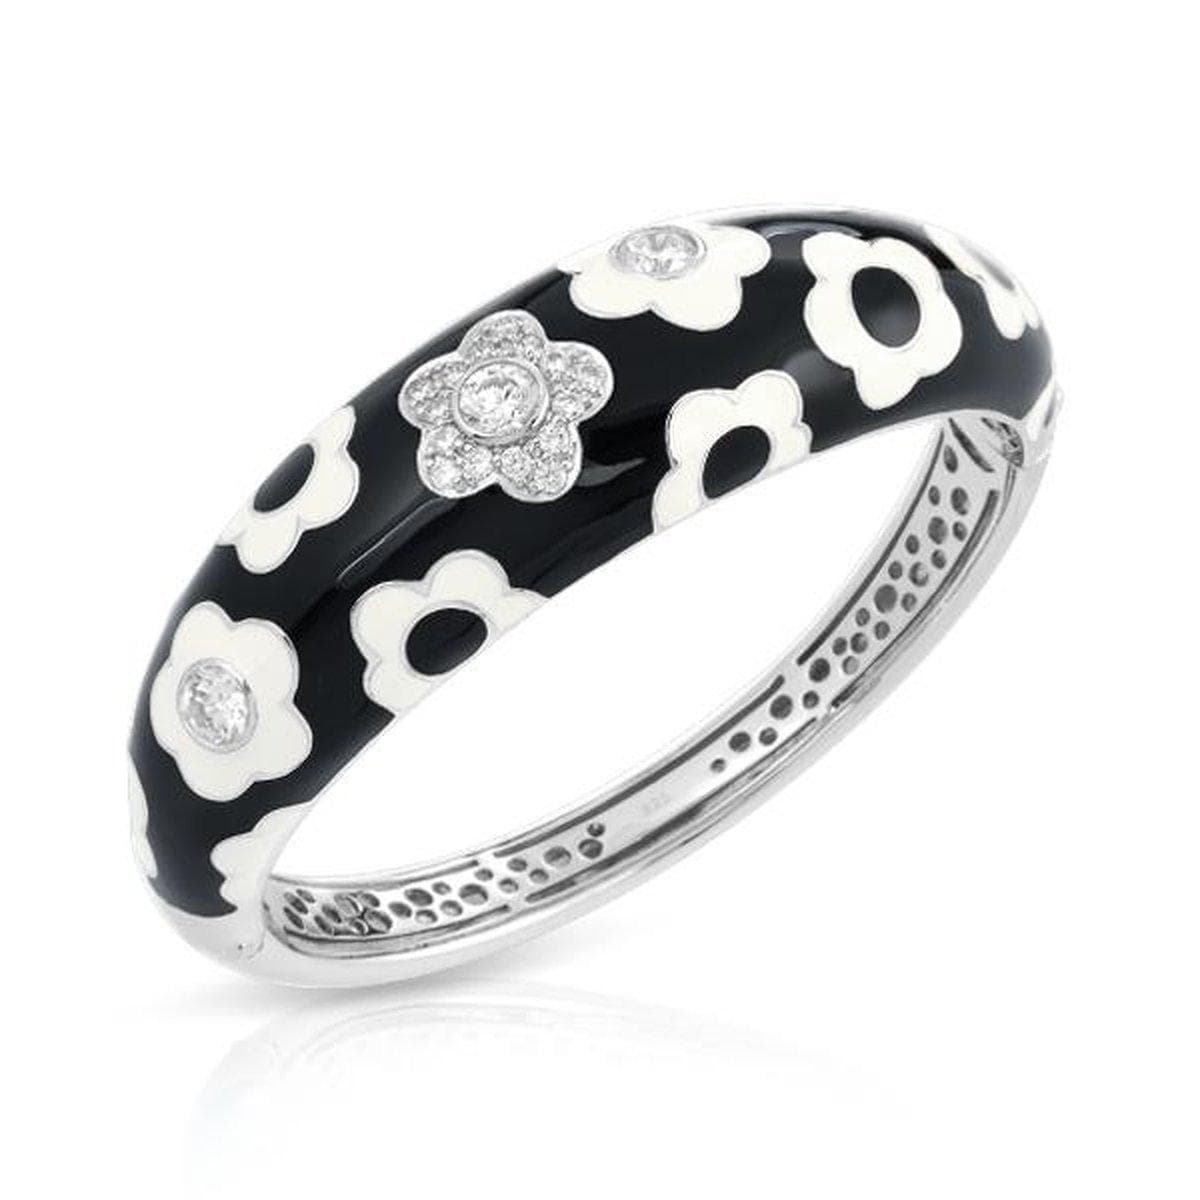 Fleur Black Bangle